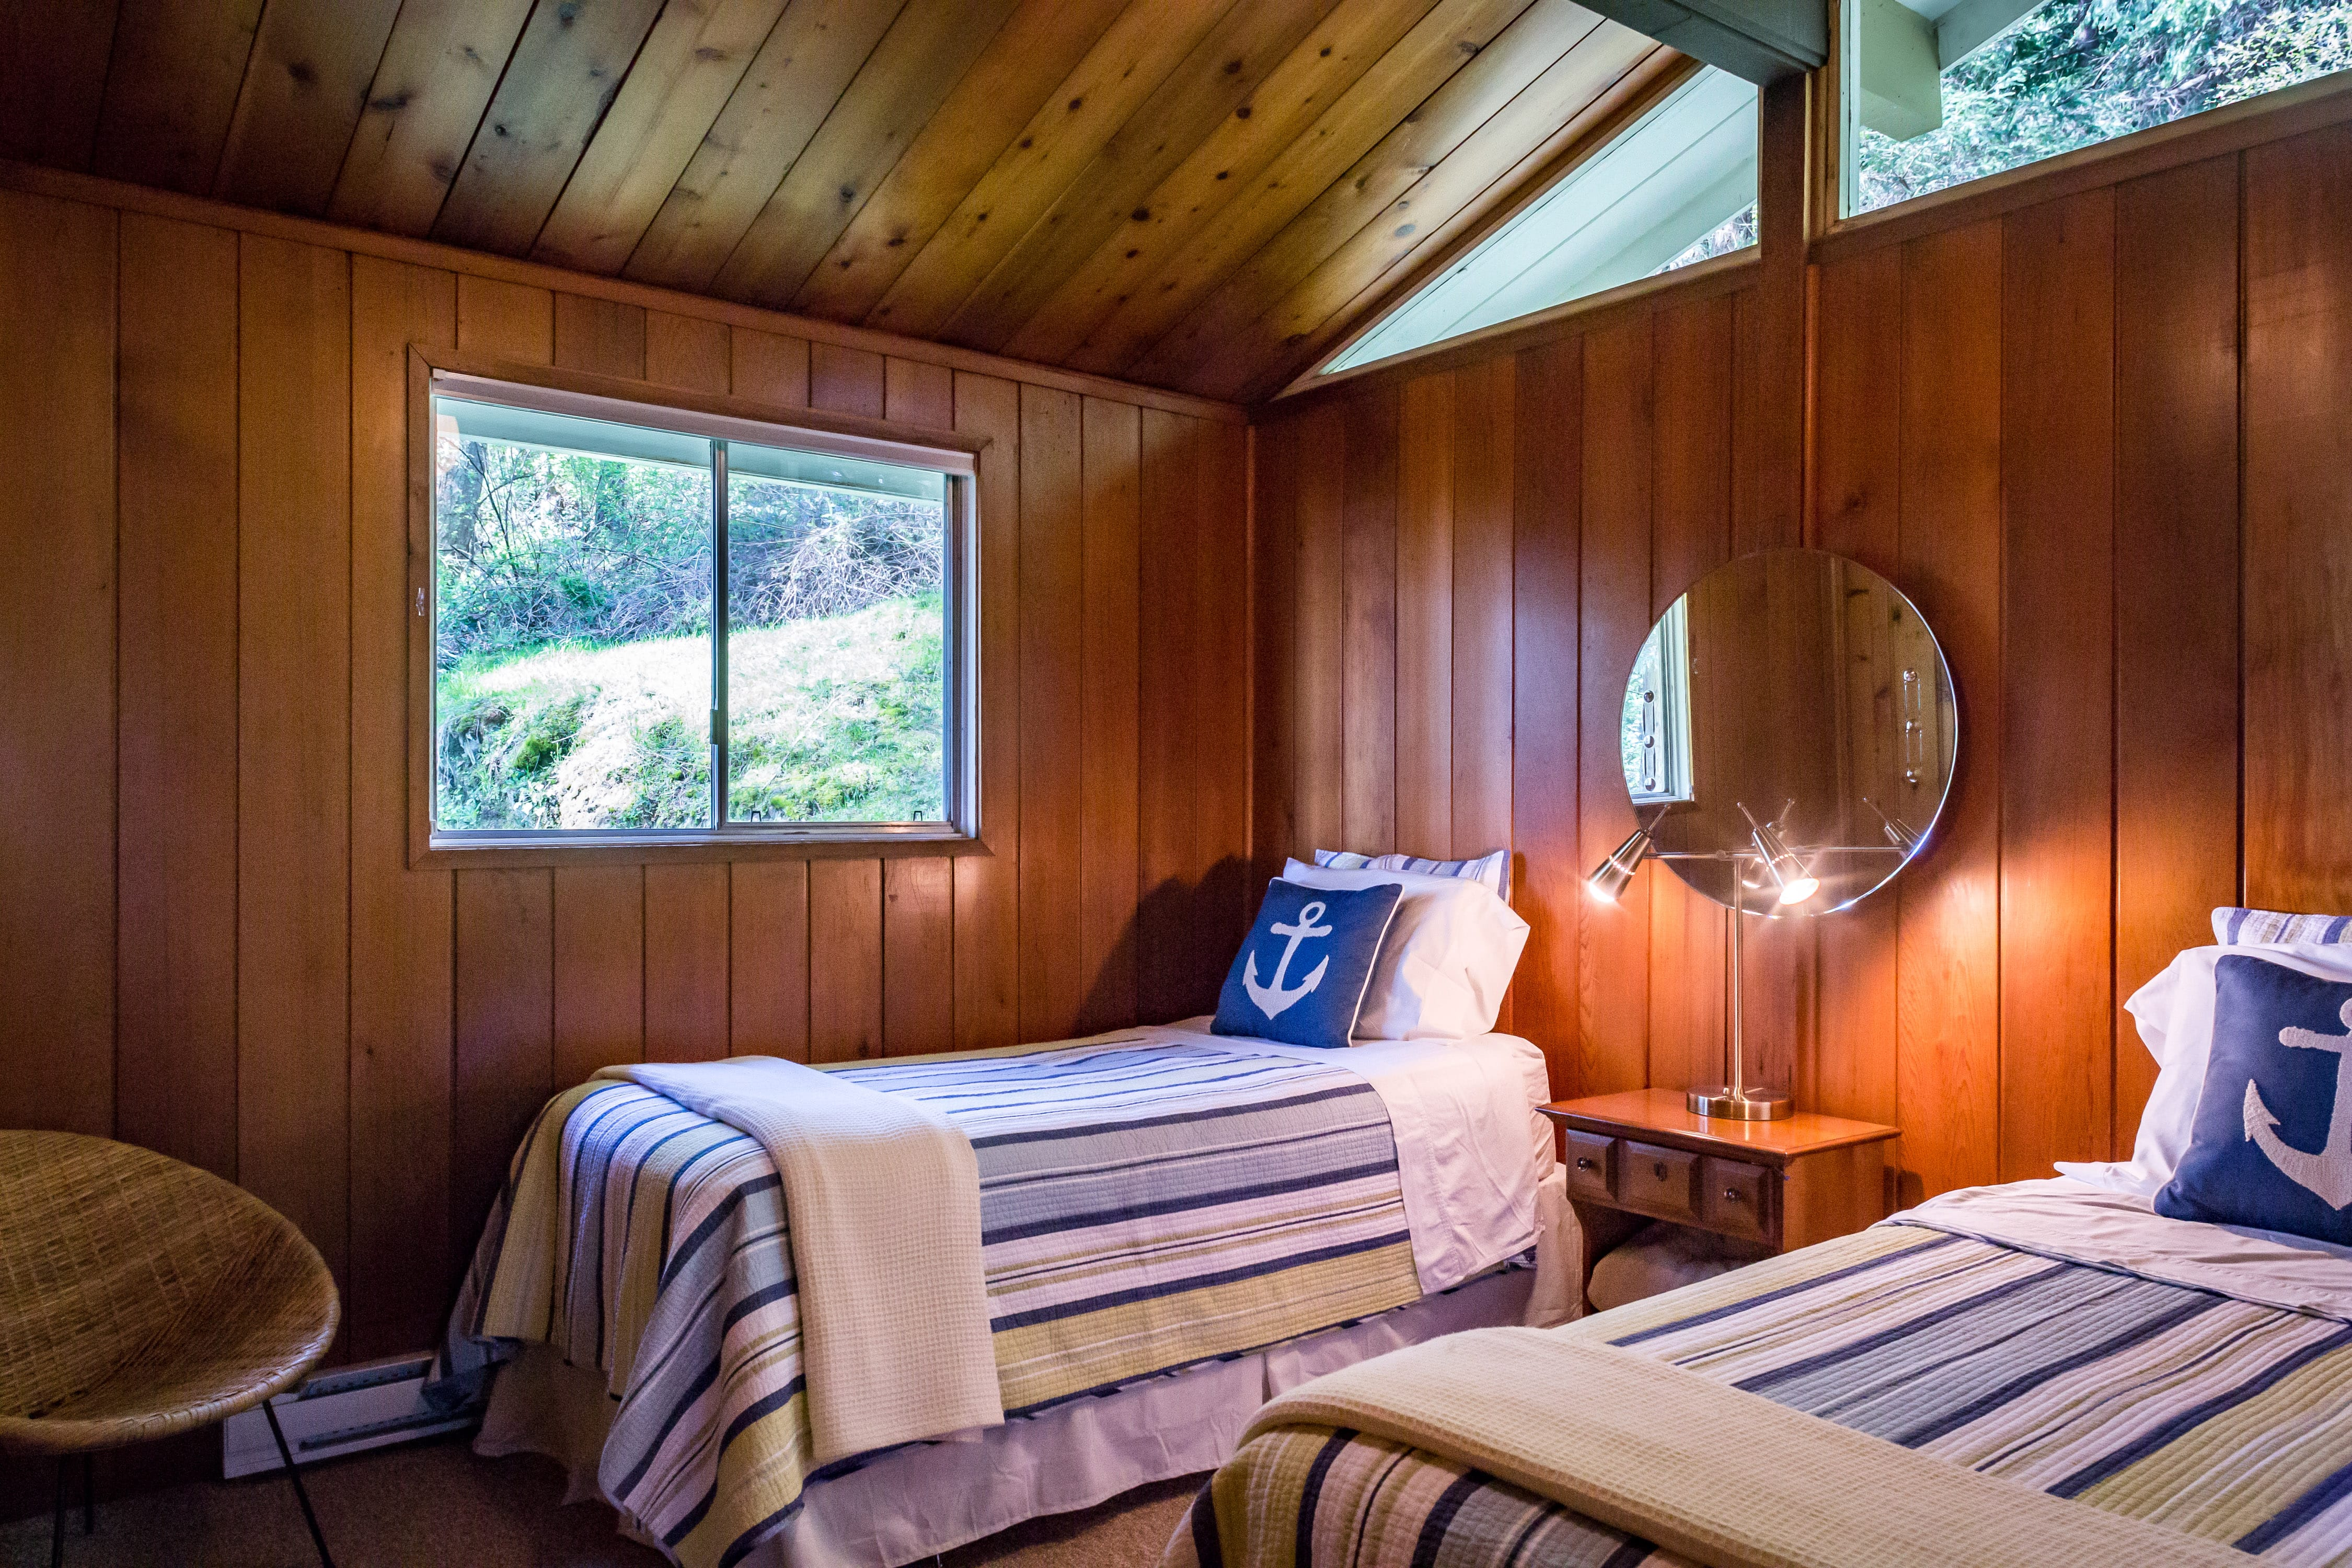 Evergreen-Twin bedroom with warm wood walls nestled among the trees